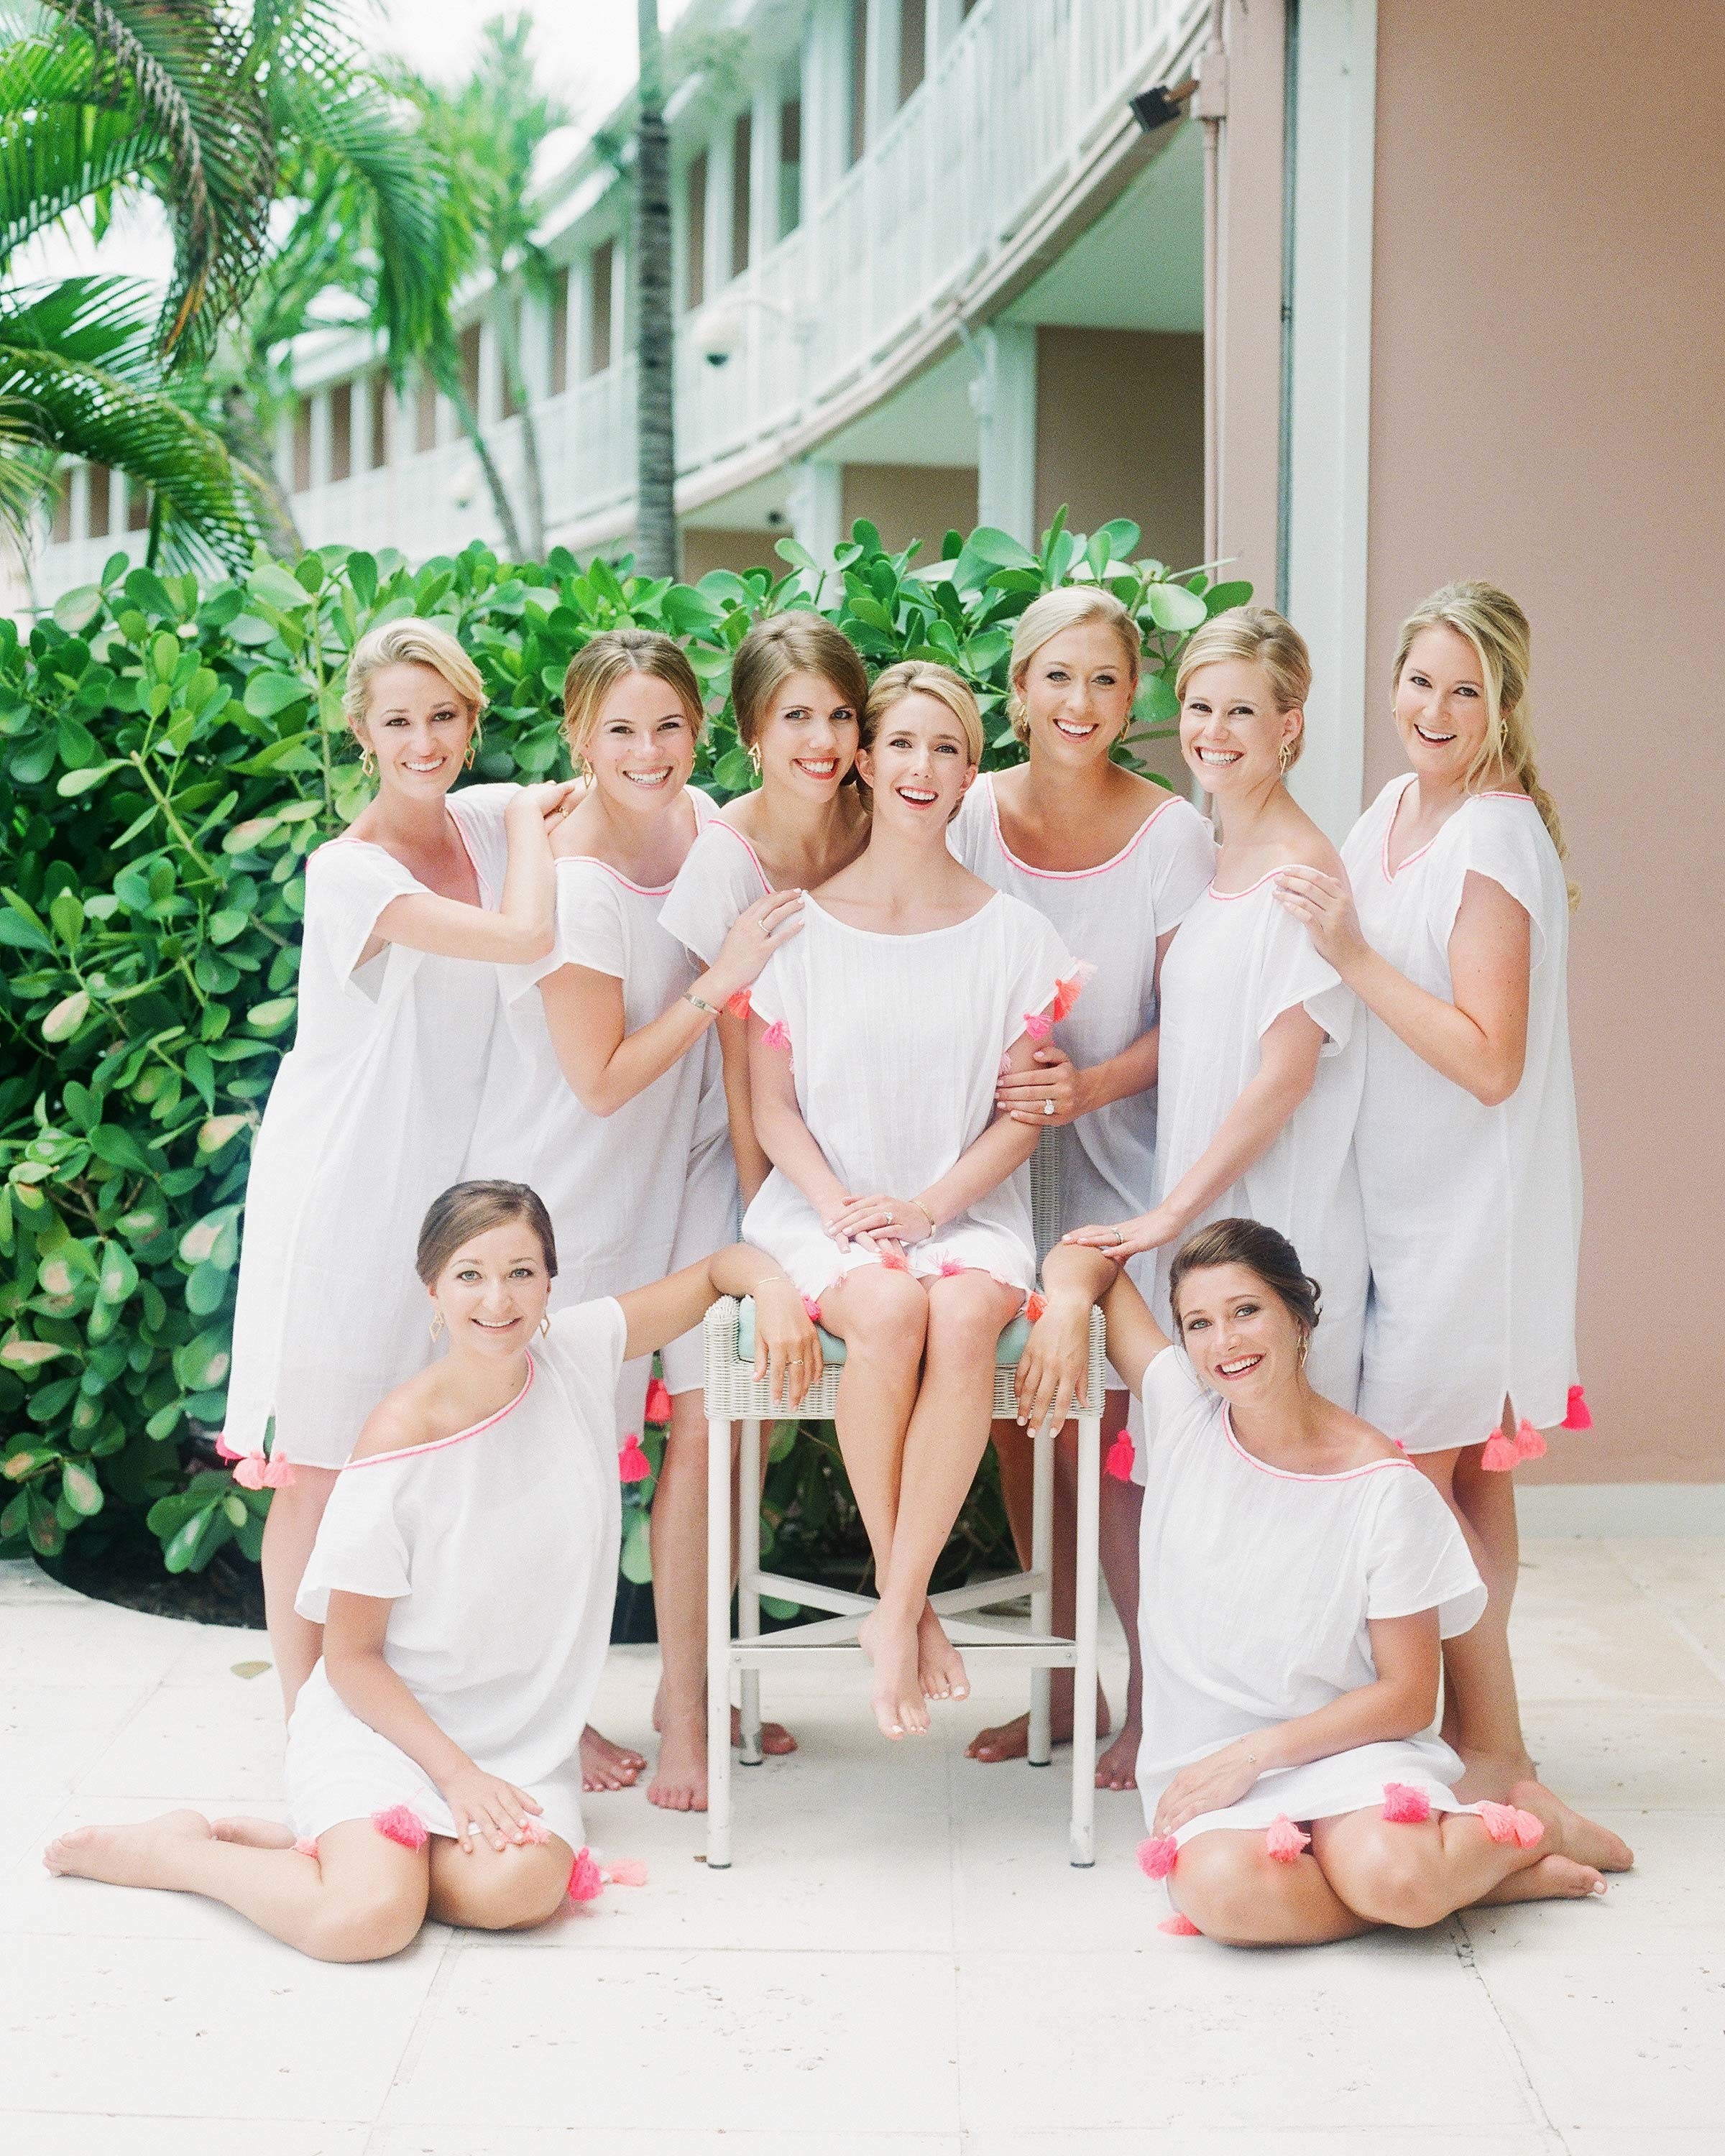 41ebea0859b19 Bridesmaids' Robes Alternatives to Set You and Your 'Maids Apart ...